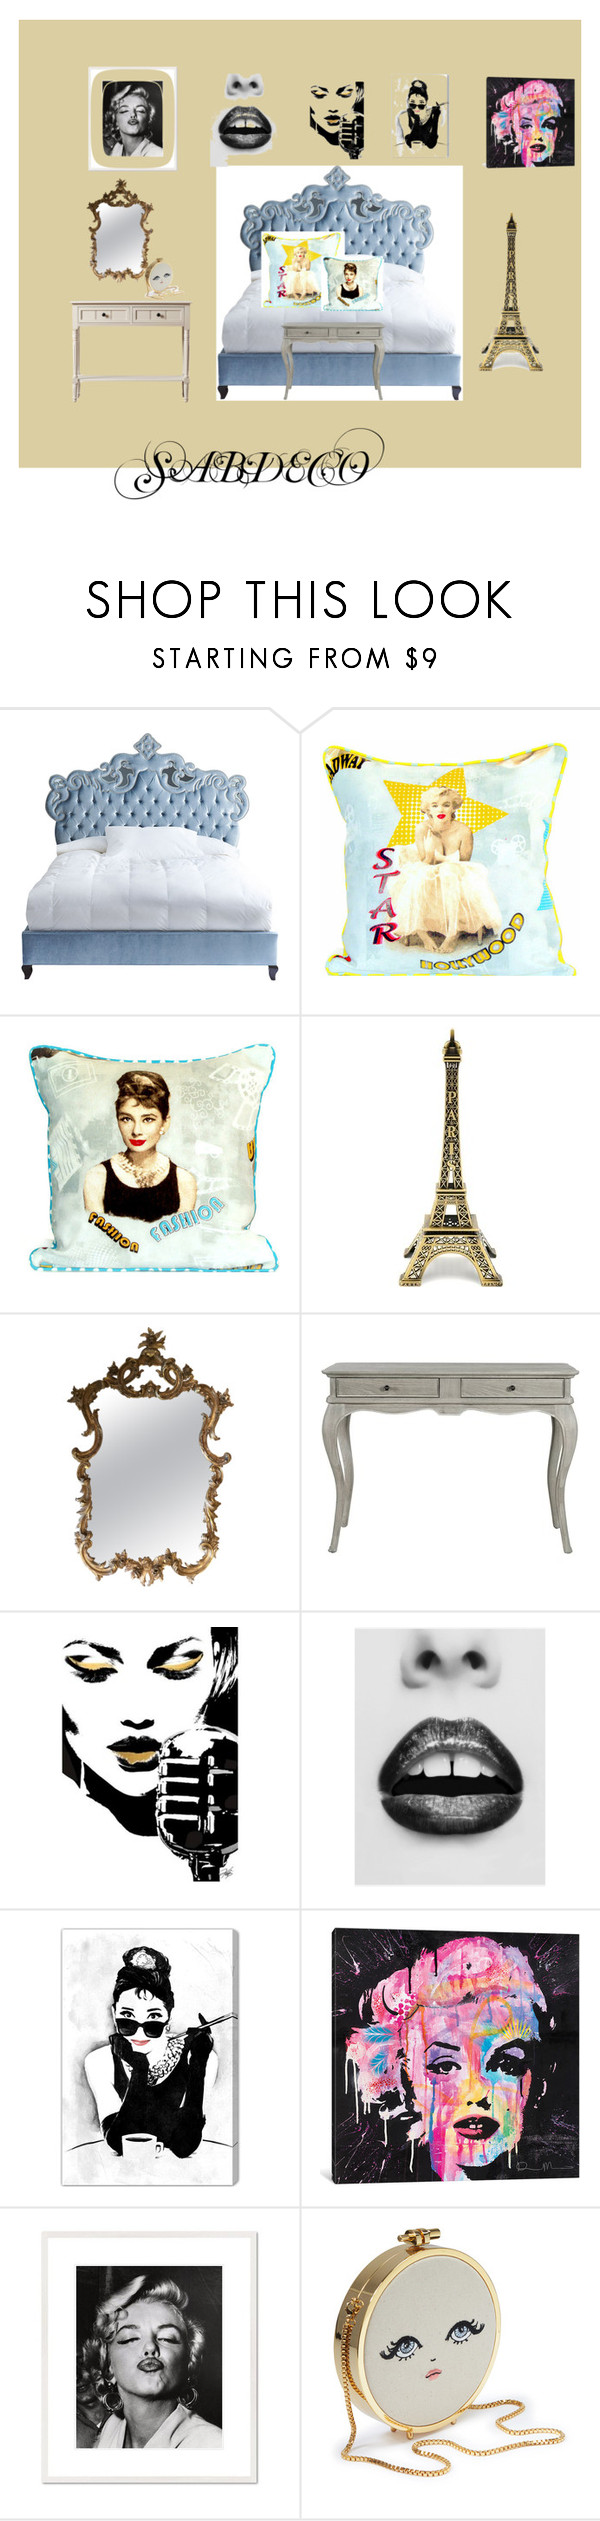 """""""sABDECO"""" by sharon-pipkin on Polyvore featuring interior, interiors, interior design, home, home decor, interior decorating, Haute House, Oliver Gal Artist Co., iCanvas and 1000Museums"""